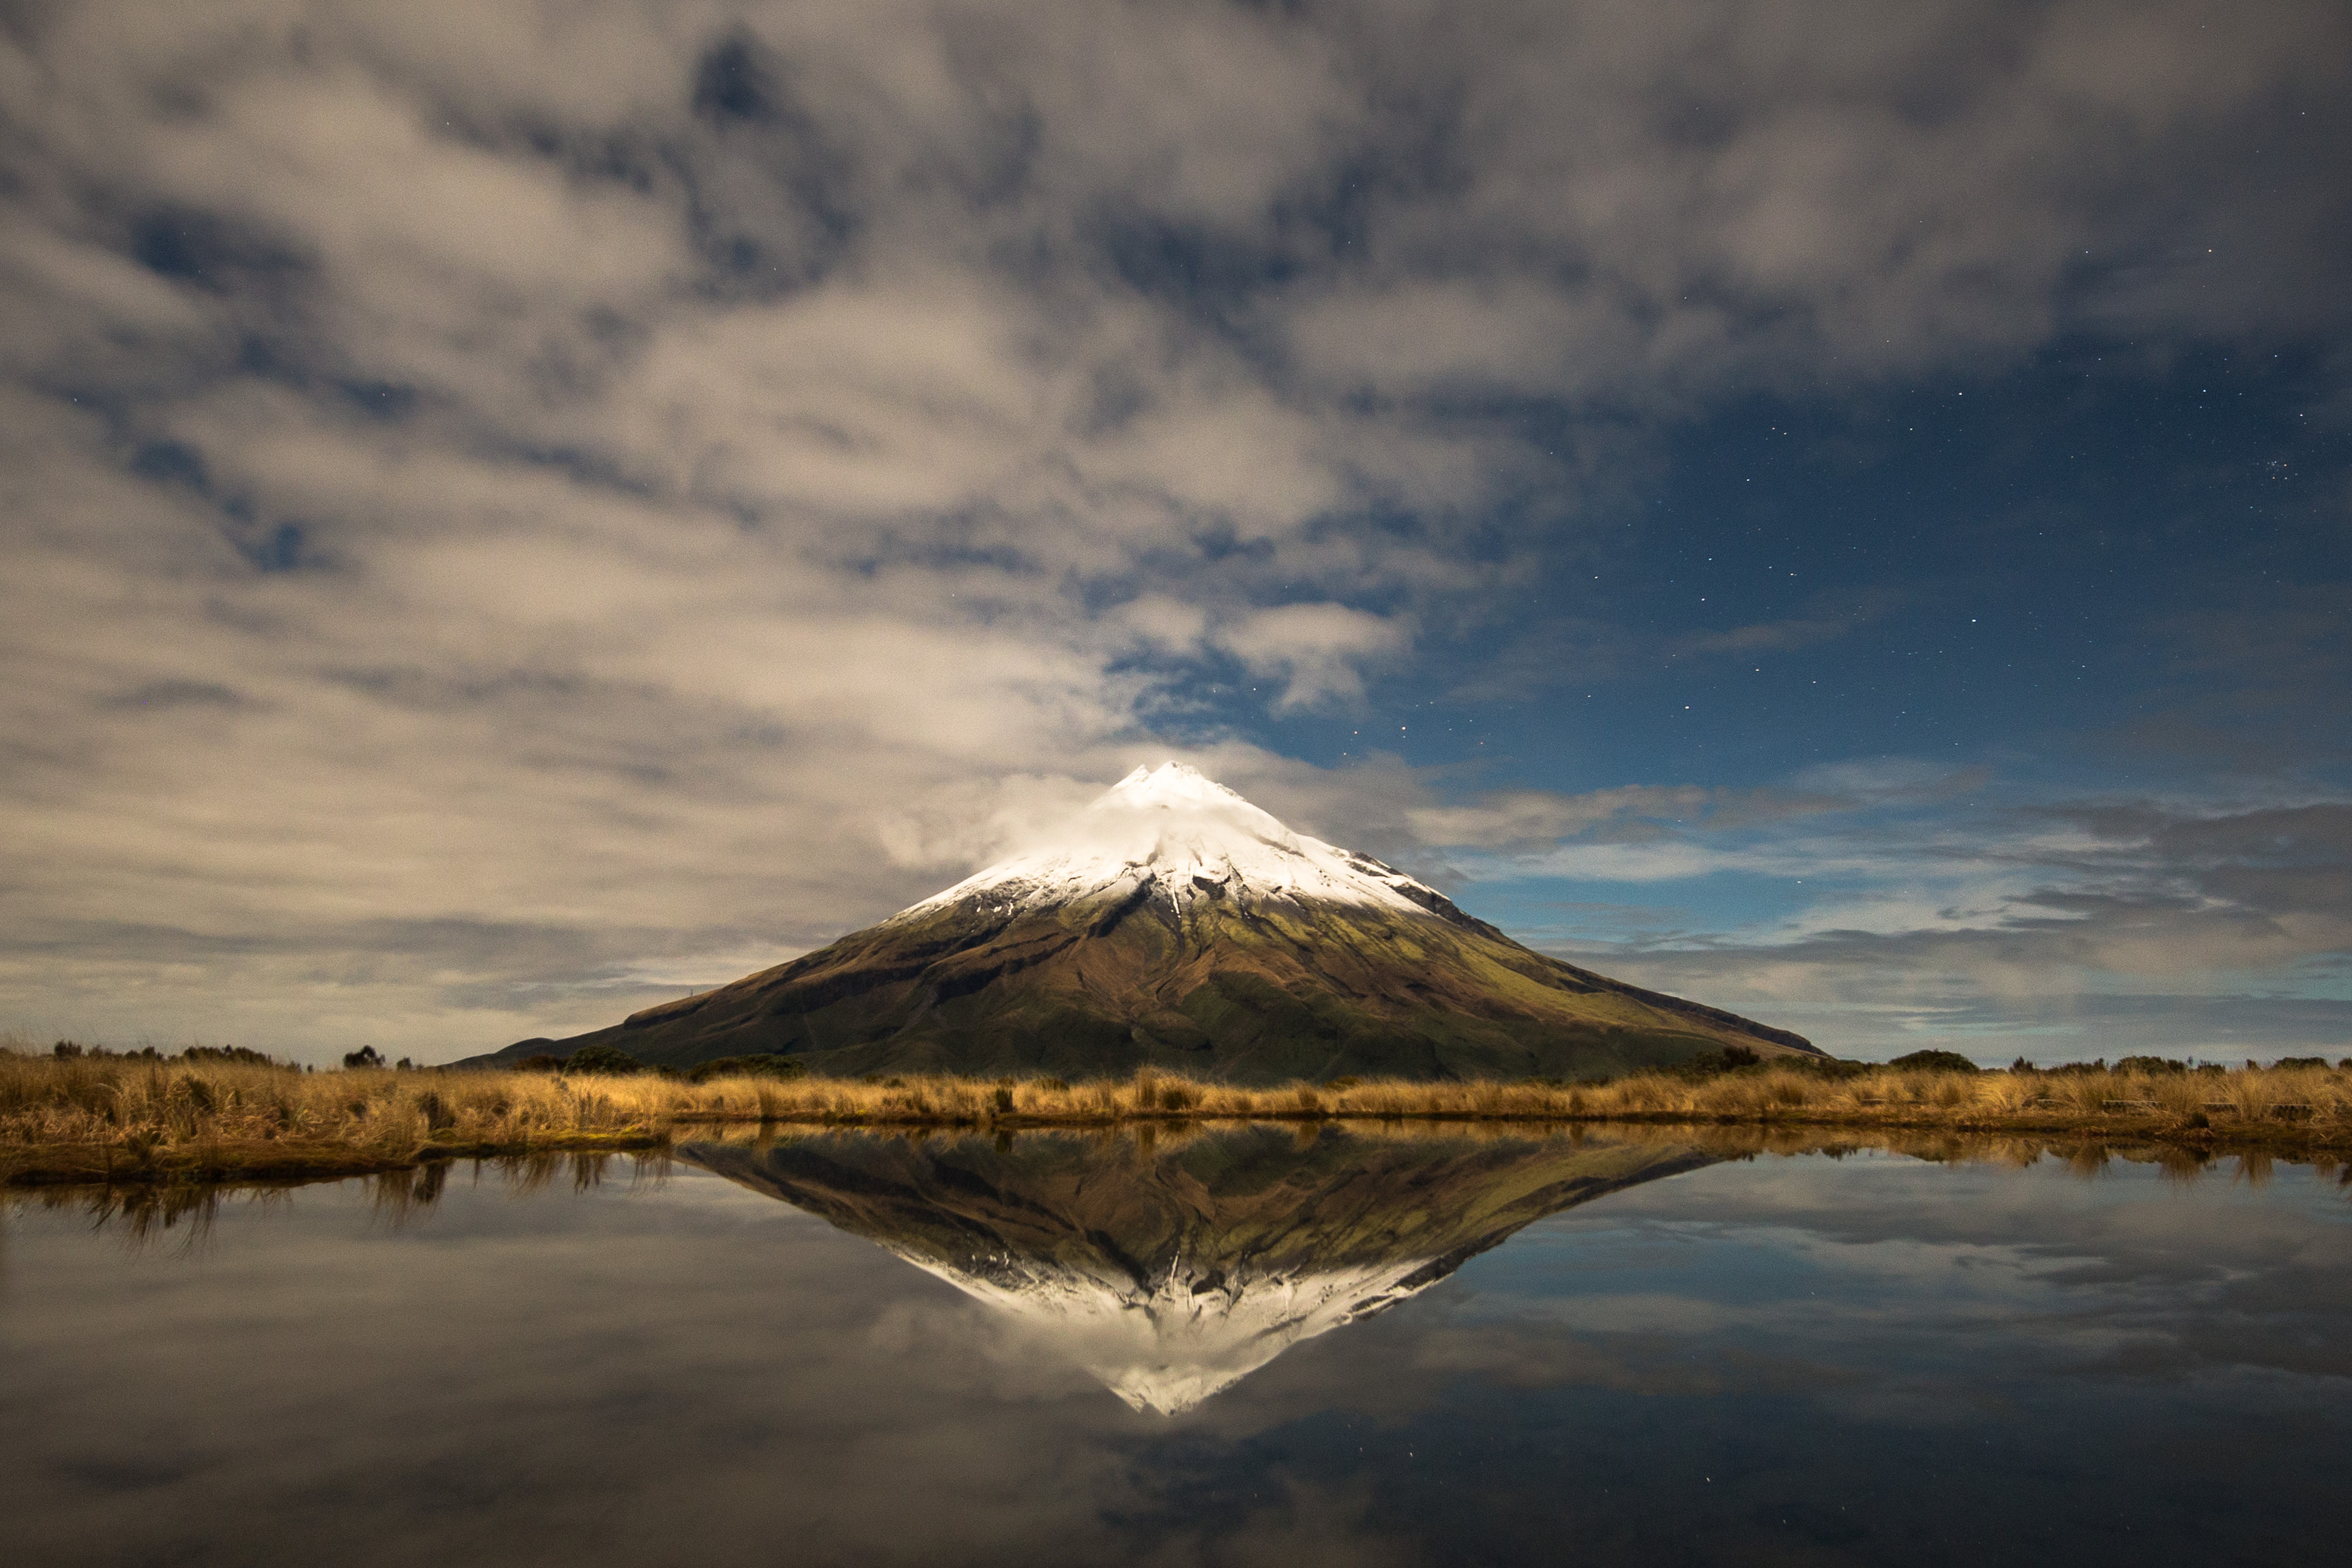 The Struggle that was Mt Taranaki, New Zealand